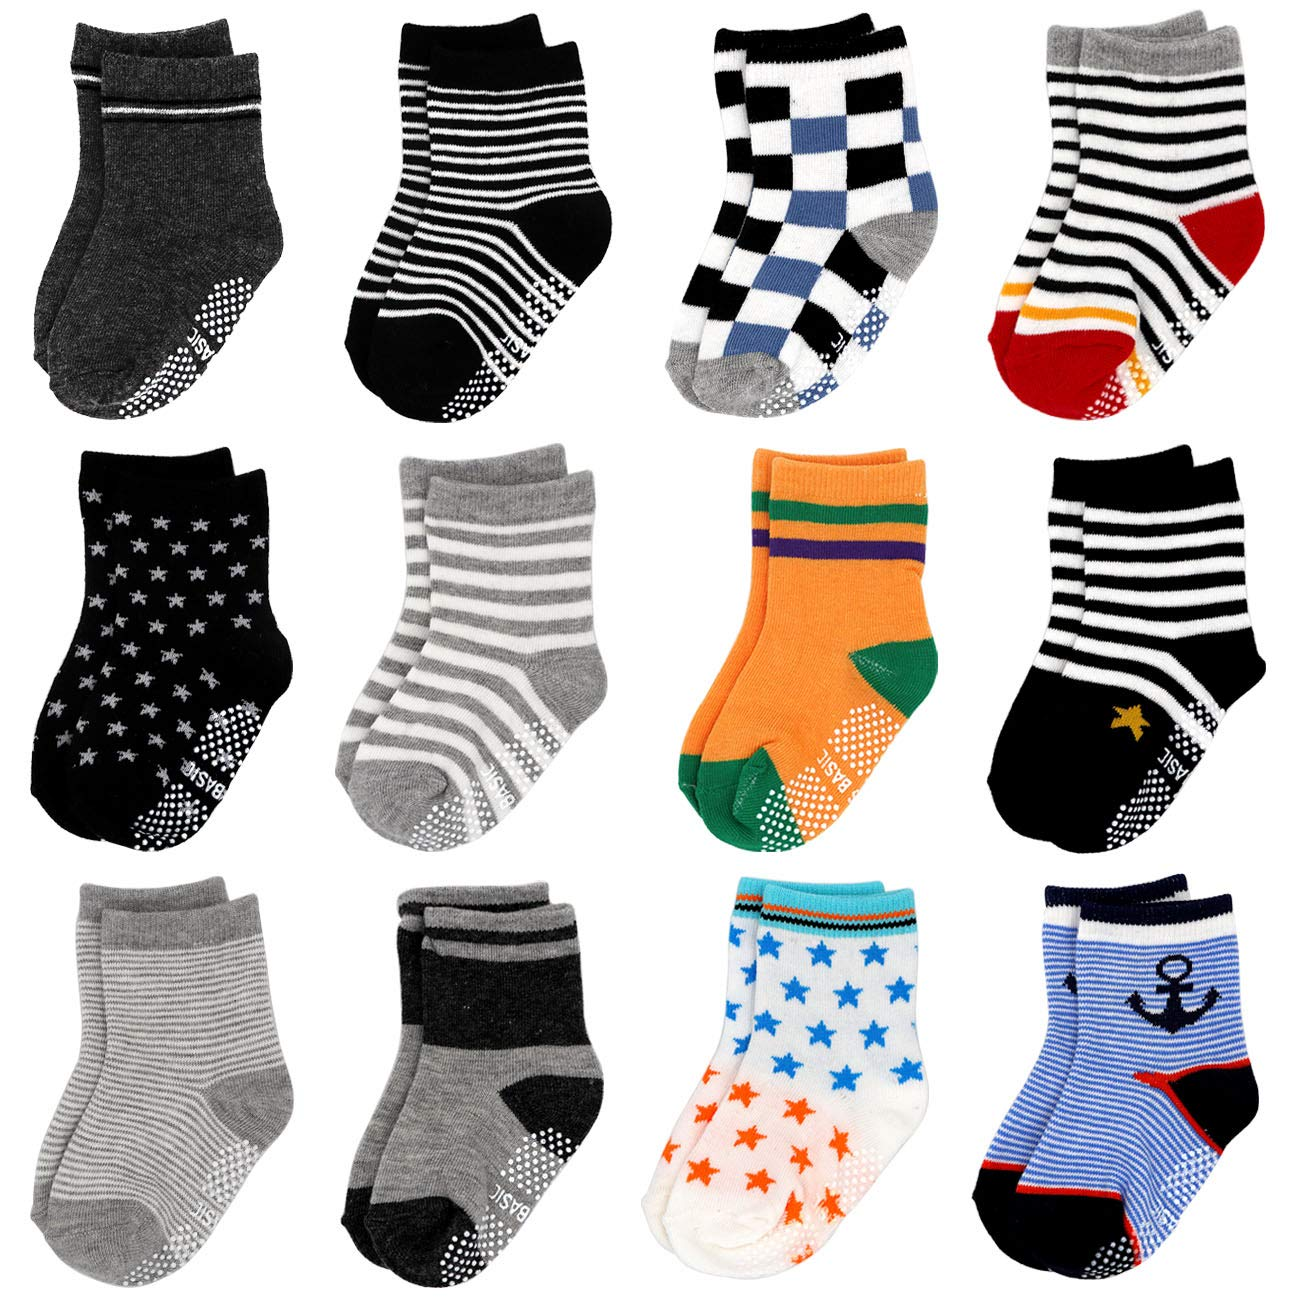 12 Pairs Assorted Baby Toddler Socks with Grips Non Skid Anti Slip Cotton Ankle Socks for Walker Kids 12-24 Months